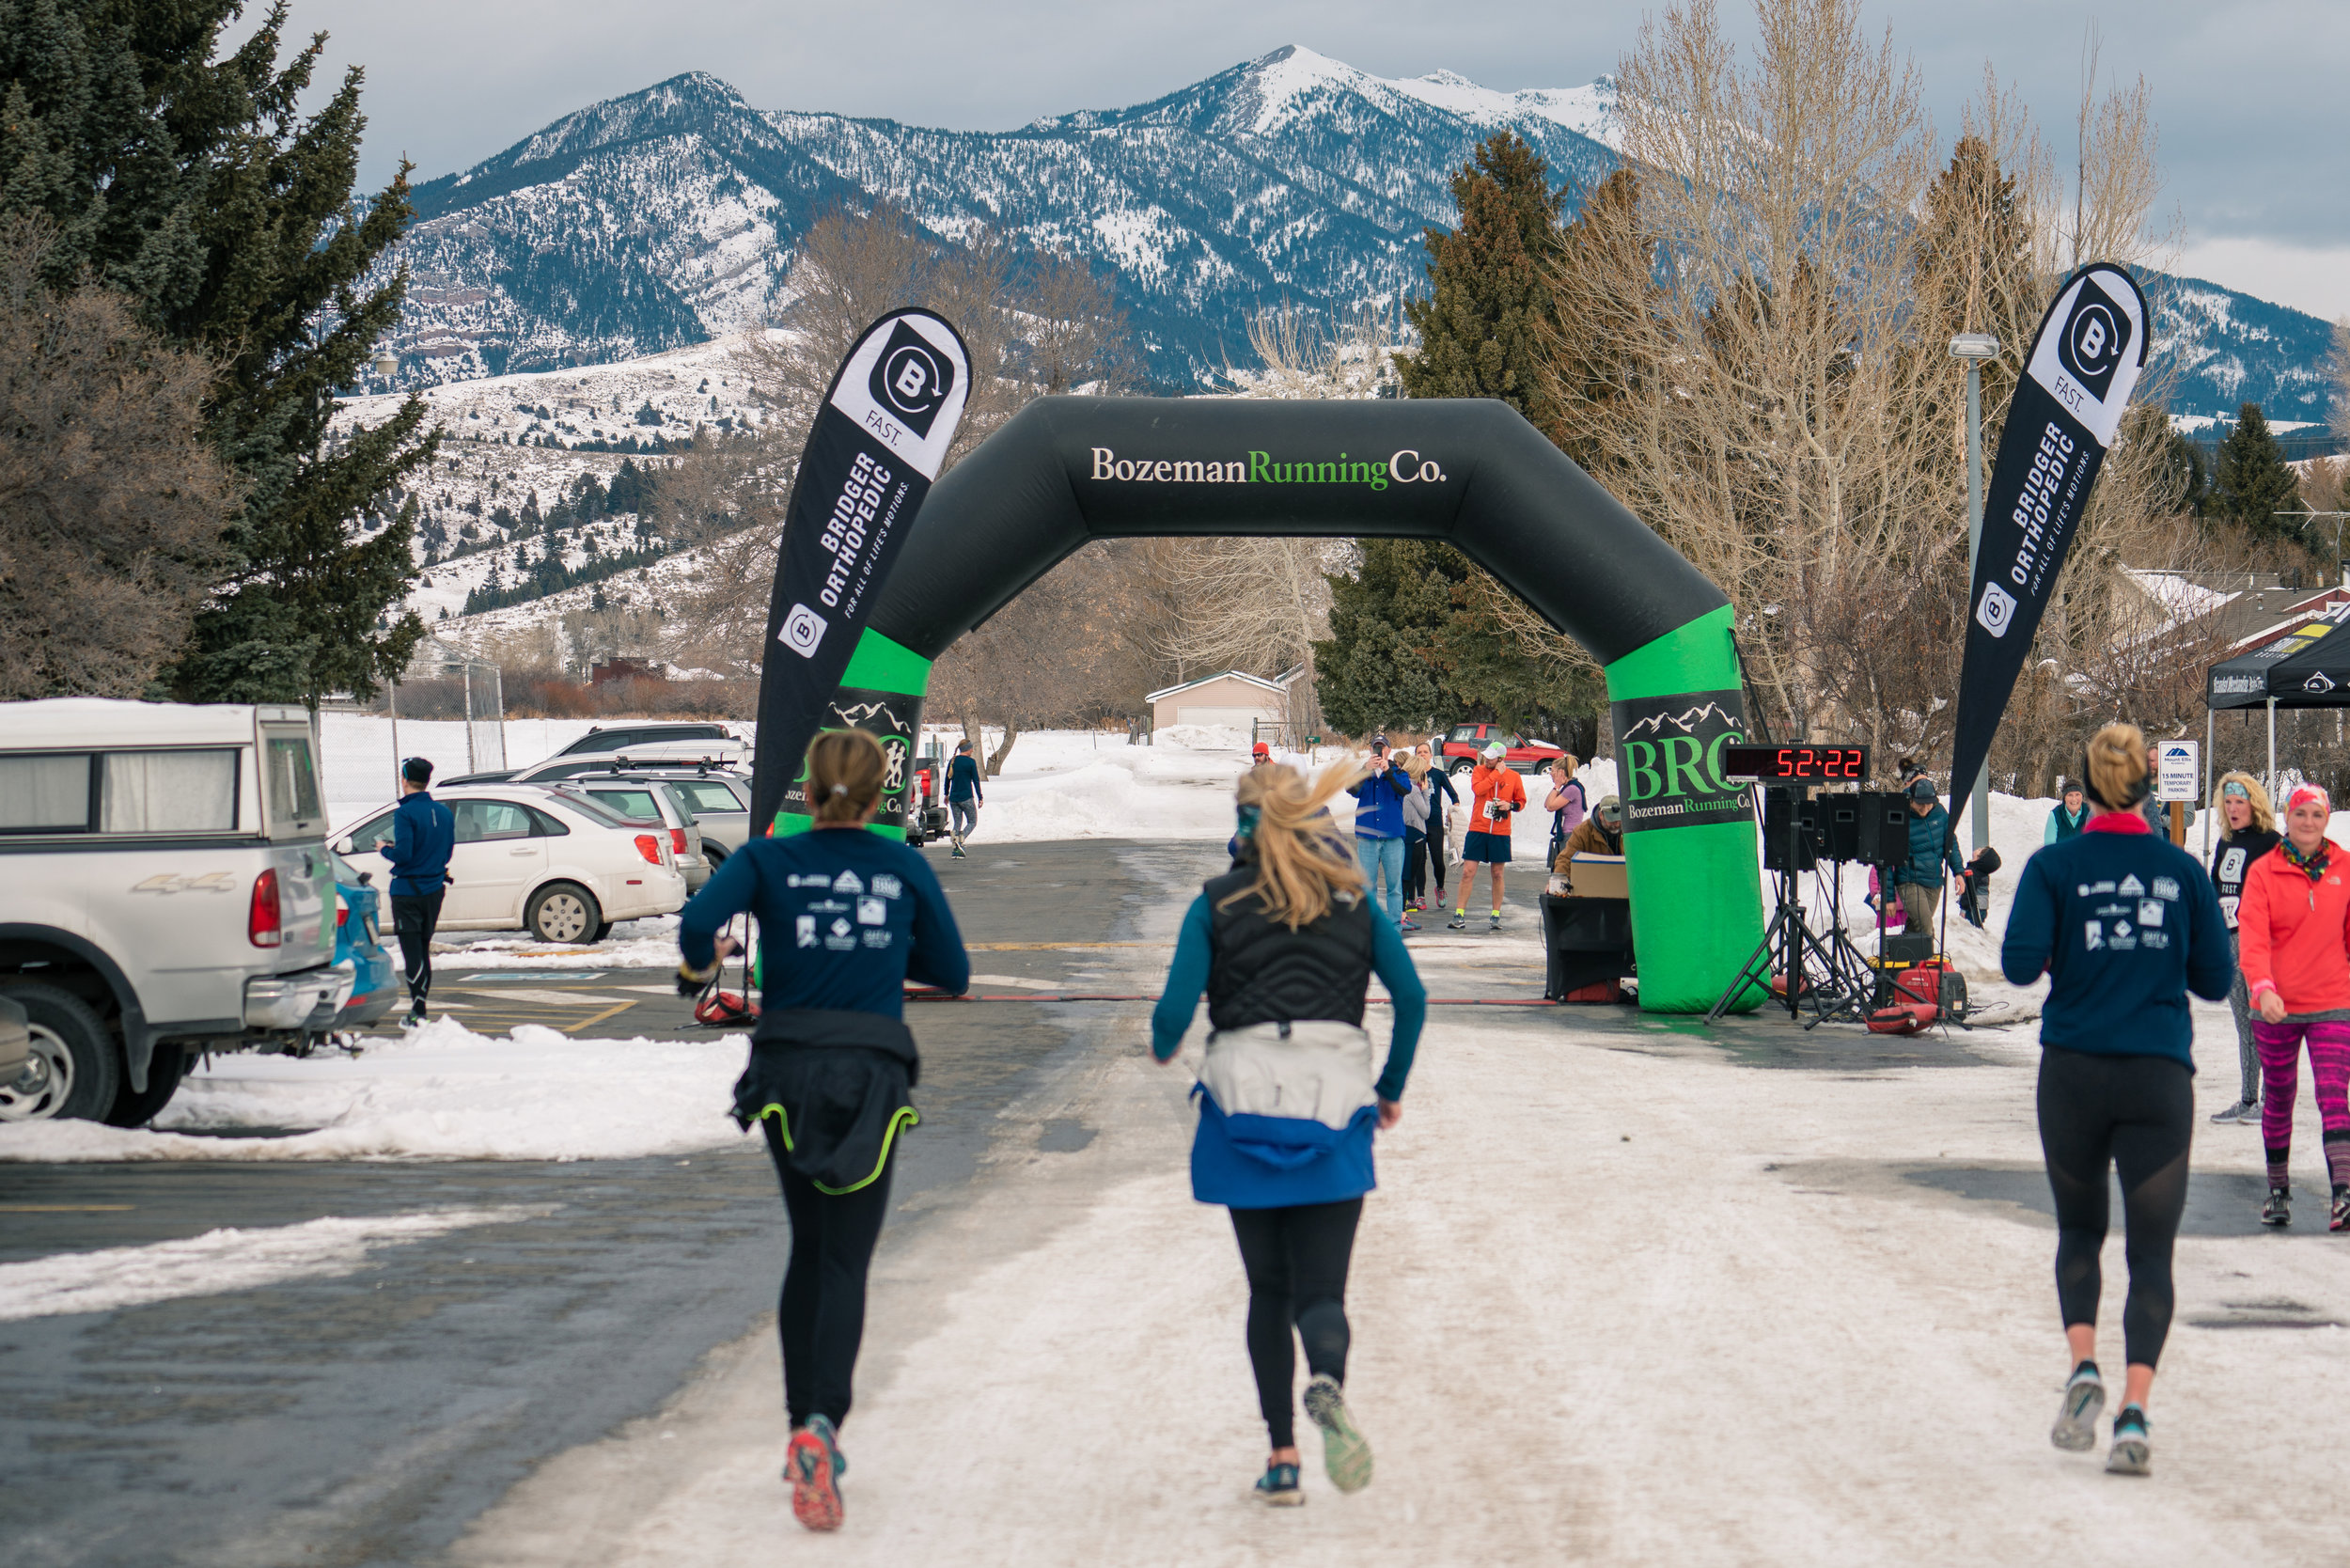 Approaching the finish line during Bozeman Running Co.'s racing of the Bear near Bozeman, Montana.